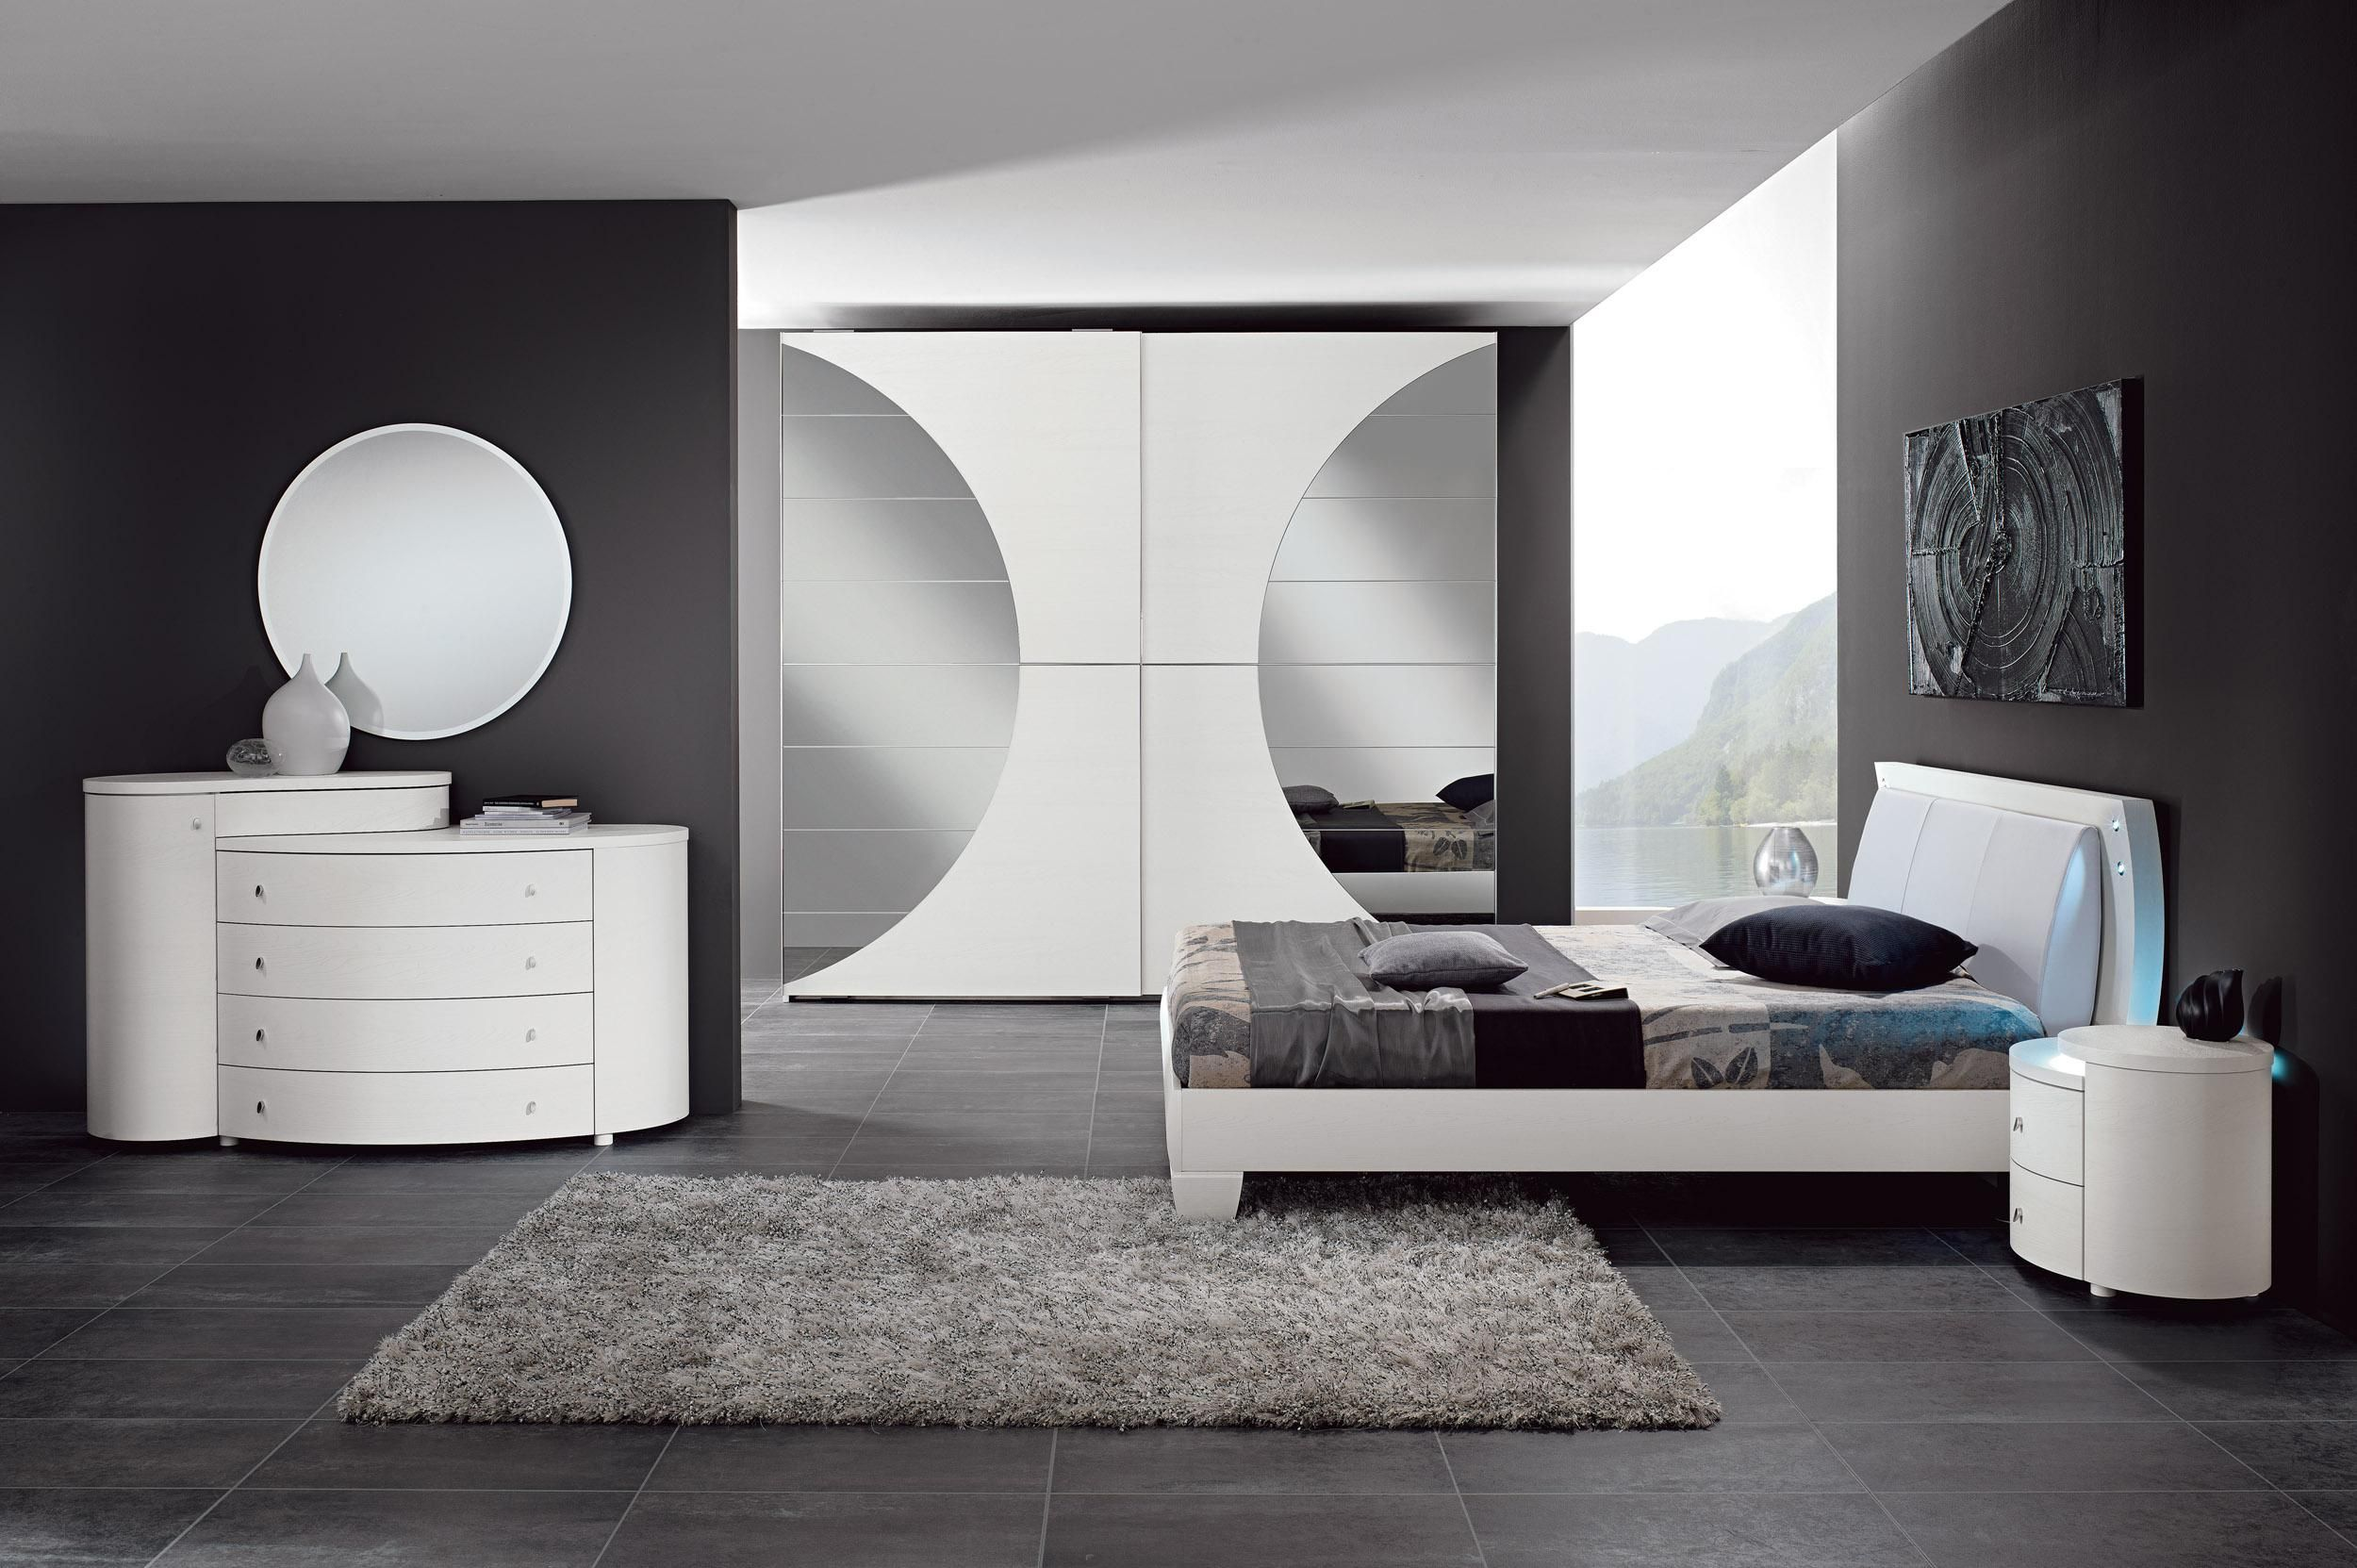 Made In Italy Leather Luxury Contemporary Furniture Set: Made In Italy Leather Design Bedroom Furniture. In